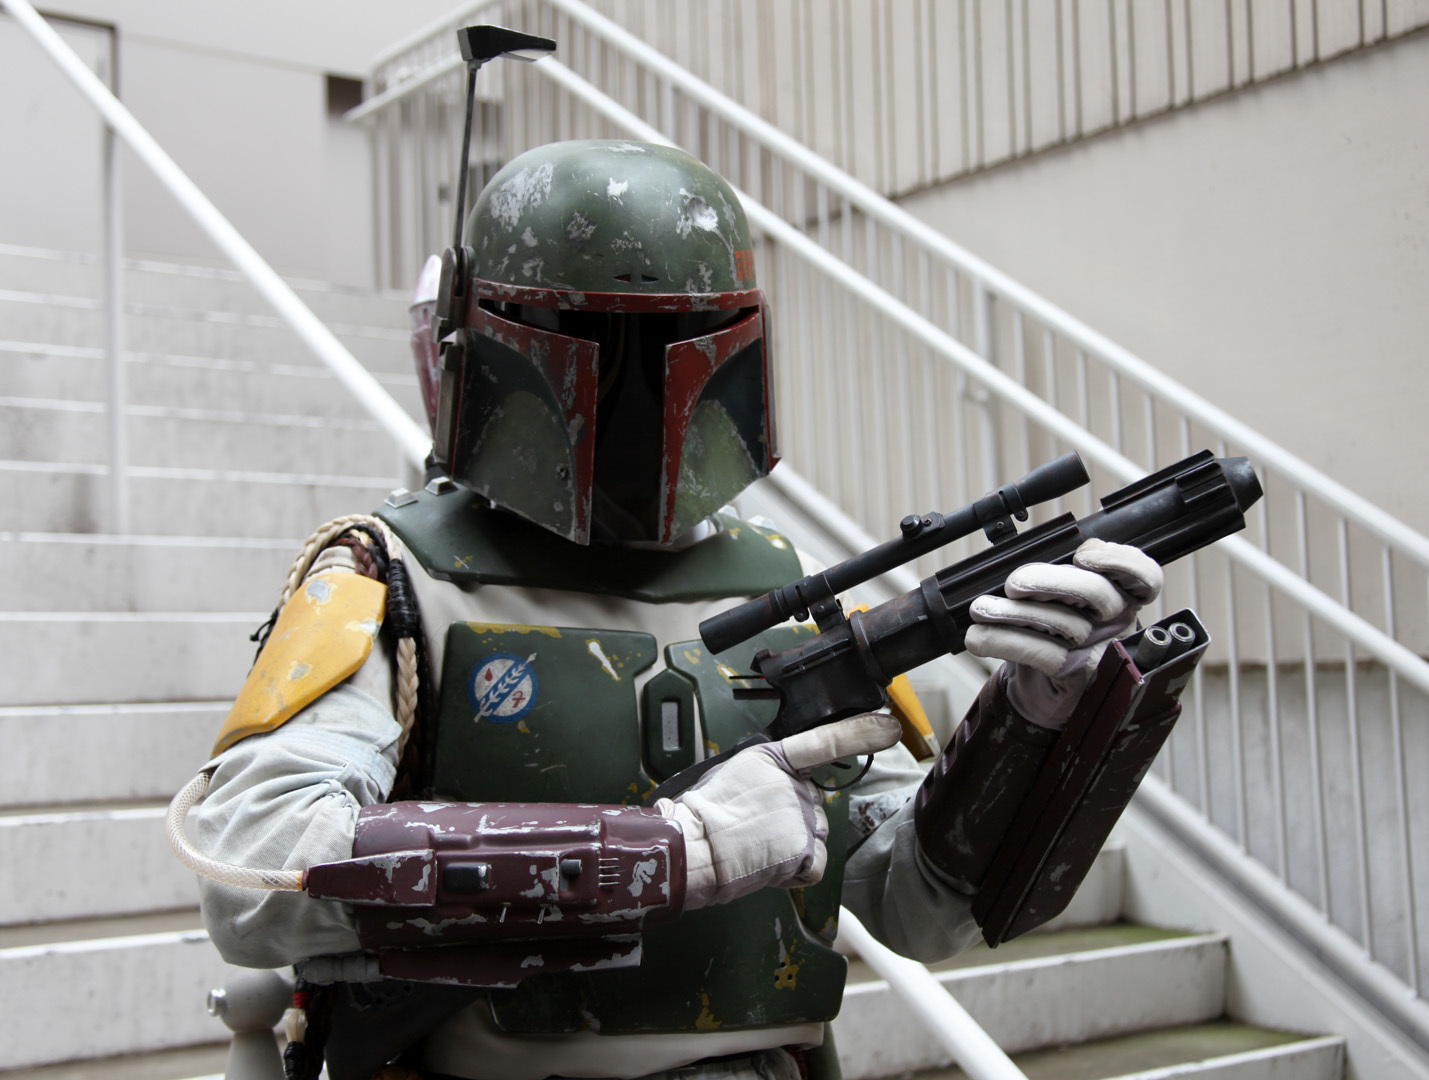 "<p>The faceless Boba Fett stands out as one of the most mysterious of all the personae in the vast ""Star Wars"" universe.</p>  <p>For Andrew Miller, a 41-year-old office worker who spends his days at a reference law library in East Lansing, Mich., being Boba Fett -- or at least looking and acting just like the intergalactic bounty hunter -- has become a second life of sorts. When I met Miller at <a href=""http://news.cnet.com/8301-17938_105-57601015-1/rounding-up-cnets-pictorial-coverage-of-dragon-con/"" >Dragon Con</a> in early September, I knew I finally came across the Boba Fett fan I'd always been searching for.</p>  <p>You can't just go out and buy a Boba Fett costume and say the deed is done, especially if you want to do it right. When Miller created his first Fett costume at age 27, little did he know he'd be spending many years after tweaking, changing pieces often, and eventually come close to achieving a film-quality representation of the Boba Fett costume as seen in the 1983 sci-fi spectacular ""<a href=""http://news.cnet.com/2300-17938_105-10016726-1.html"" >Star Wars: Return of the Jedi</a>.""</p>  <p>Miller told CNET he has spent ""hundreds and hundreds"" of hours perfecting the outfit. It took six months of nights and weekends to build the original suit, and Miller has since then upgraded almost every piece of the outfit as more reference material hit the Internet. The community and resources from <a href=""http://www.thedentedhelmet.com/"" >The Dented Helmet</a>, a collective of Boba Fett costume enthusiasts, have substantially helped Miller along the way.</p>  <p>Click through for a closer look at this incredible re-creation of Boba Fett's costume.</p>"